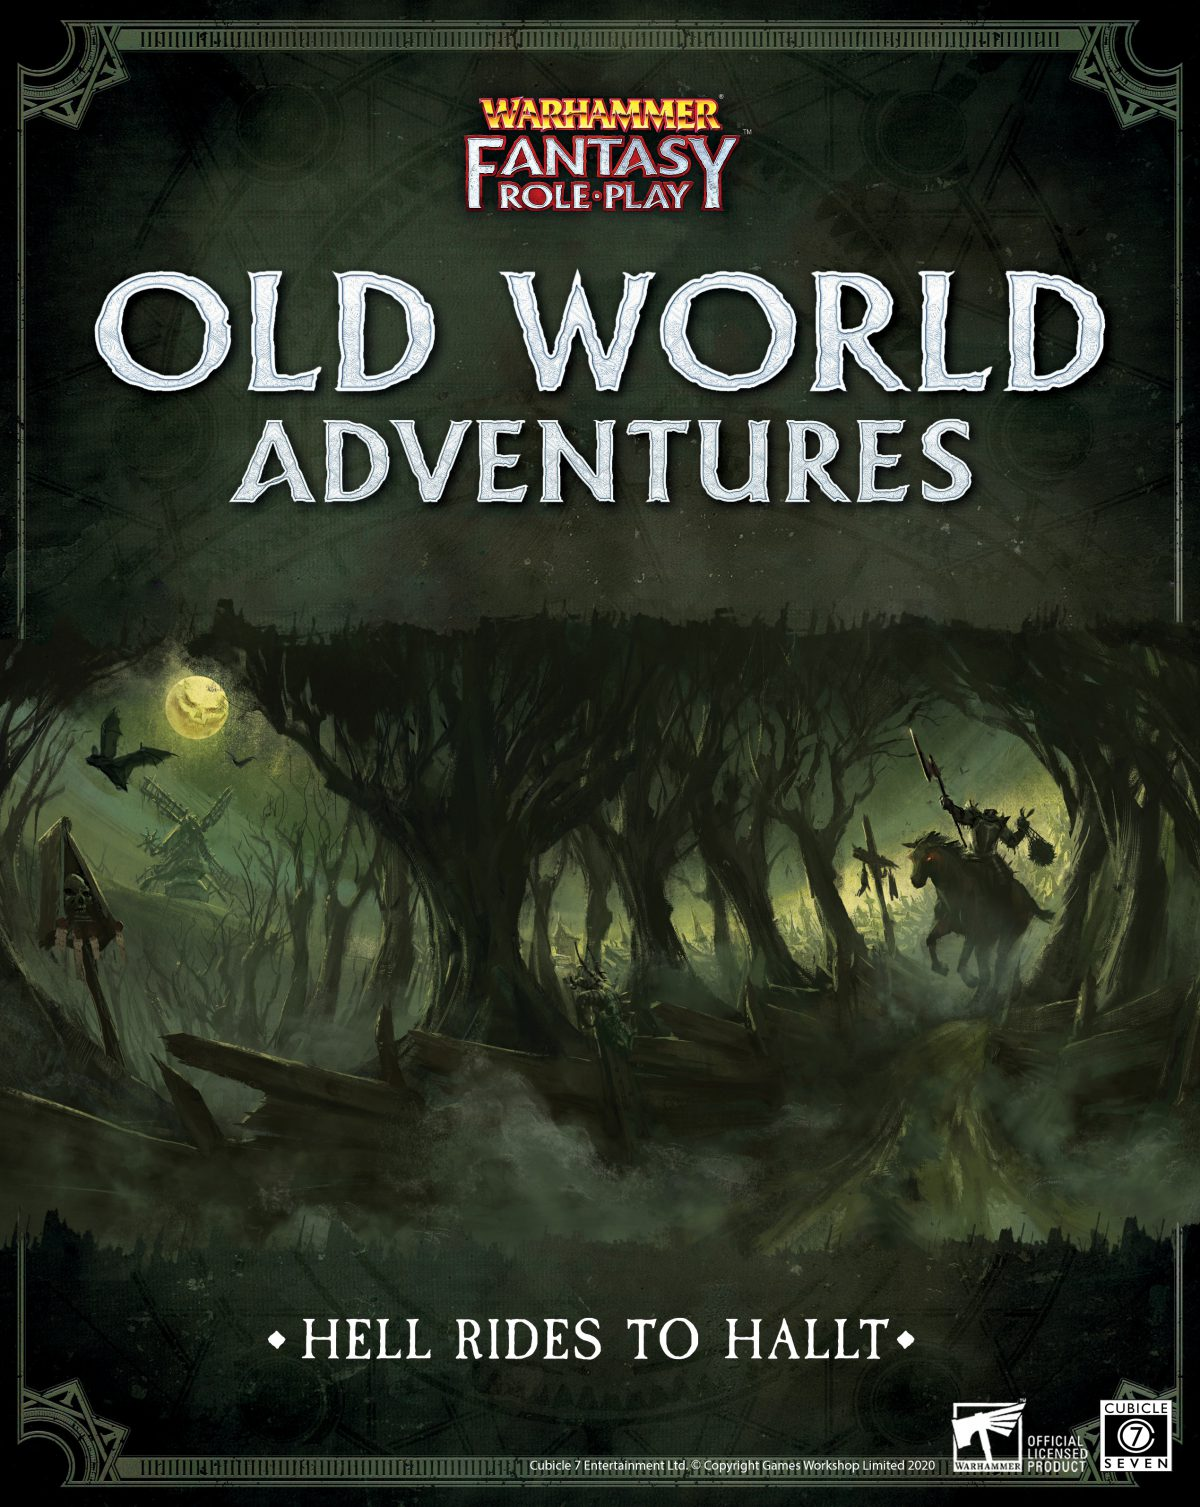 WFRP: Hell Rides to Hallt PDF Coming Soon!